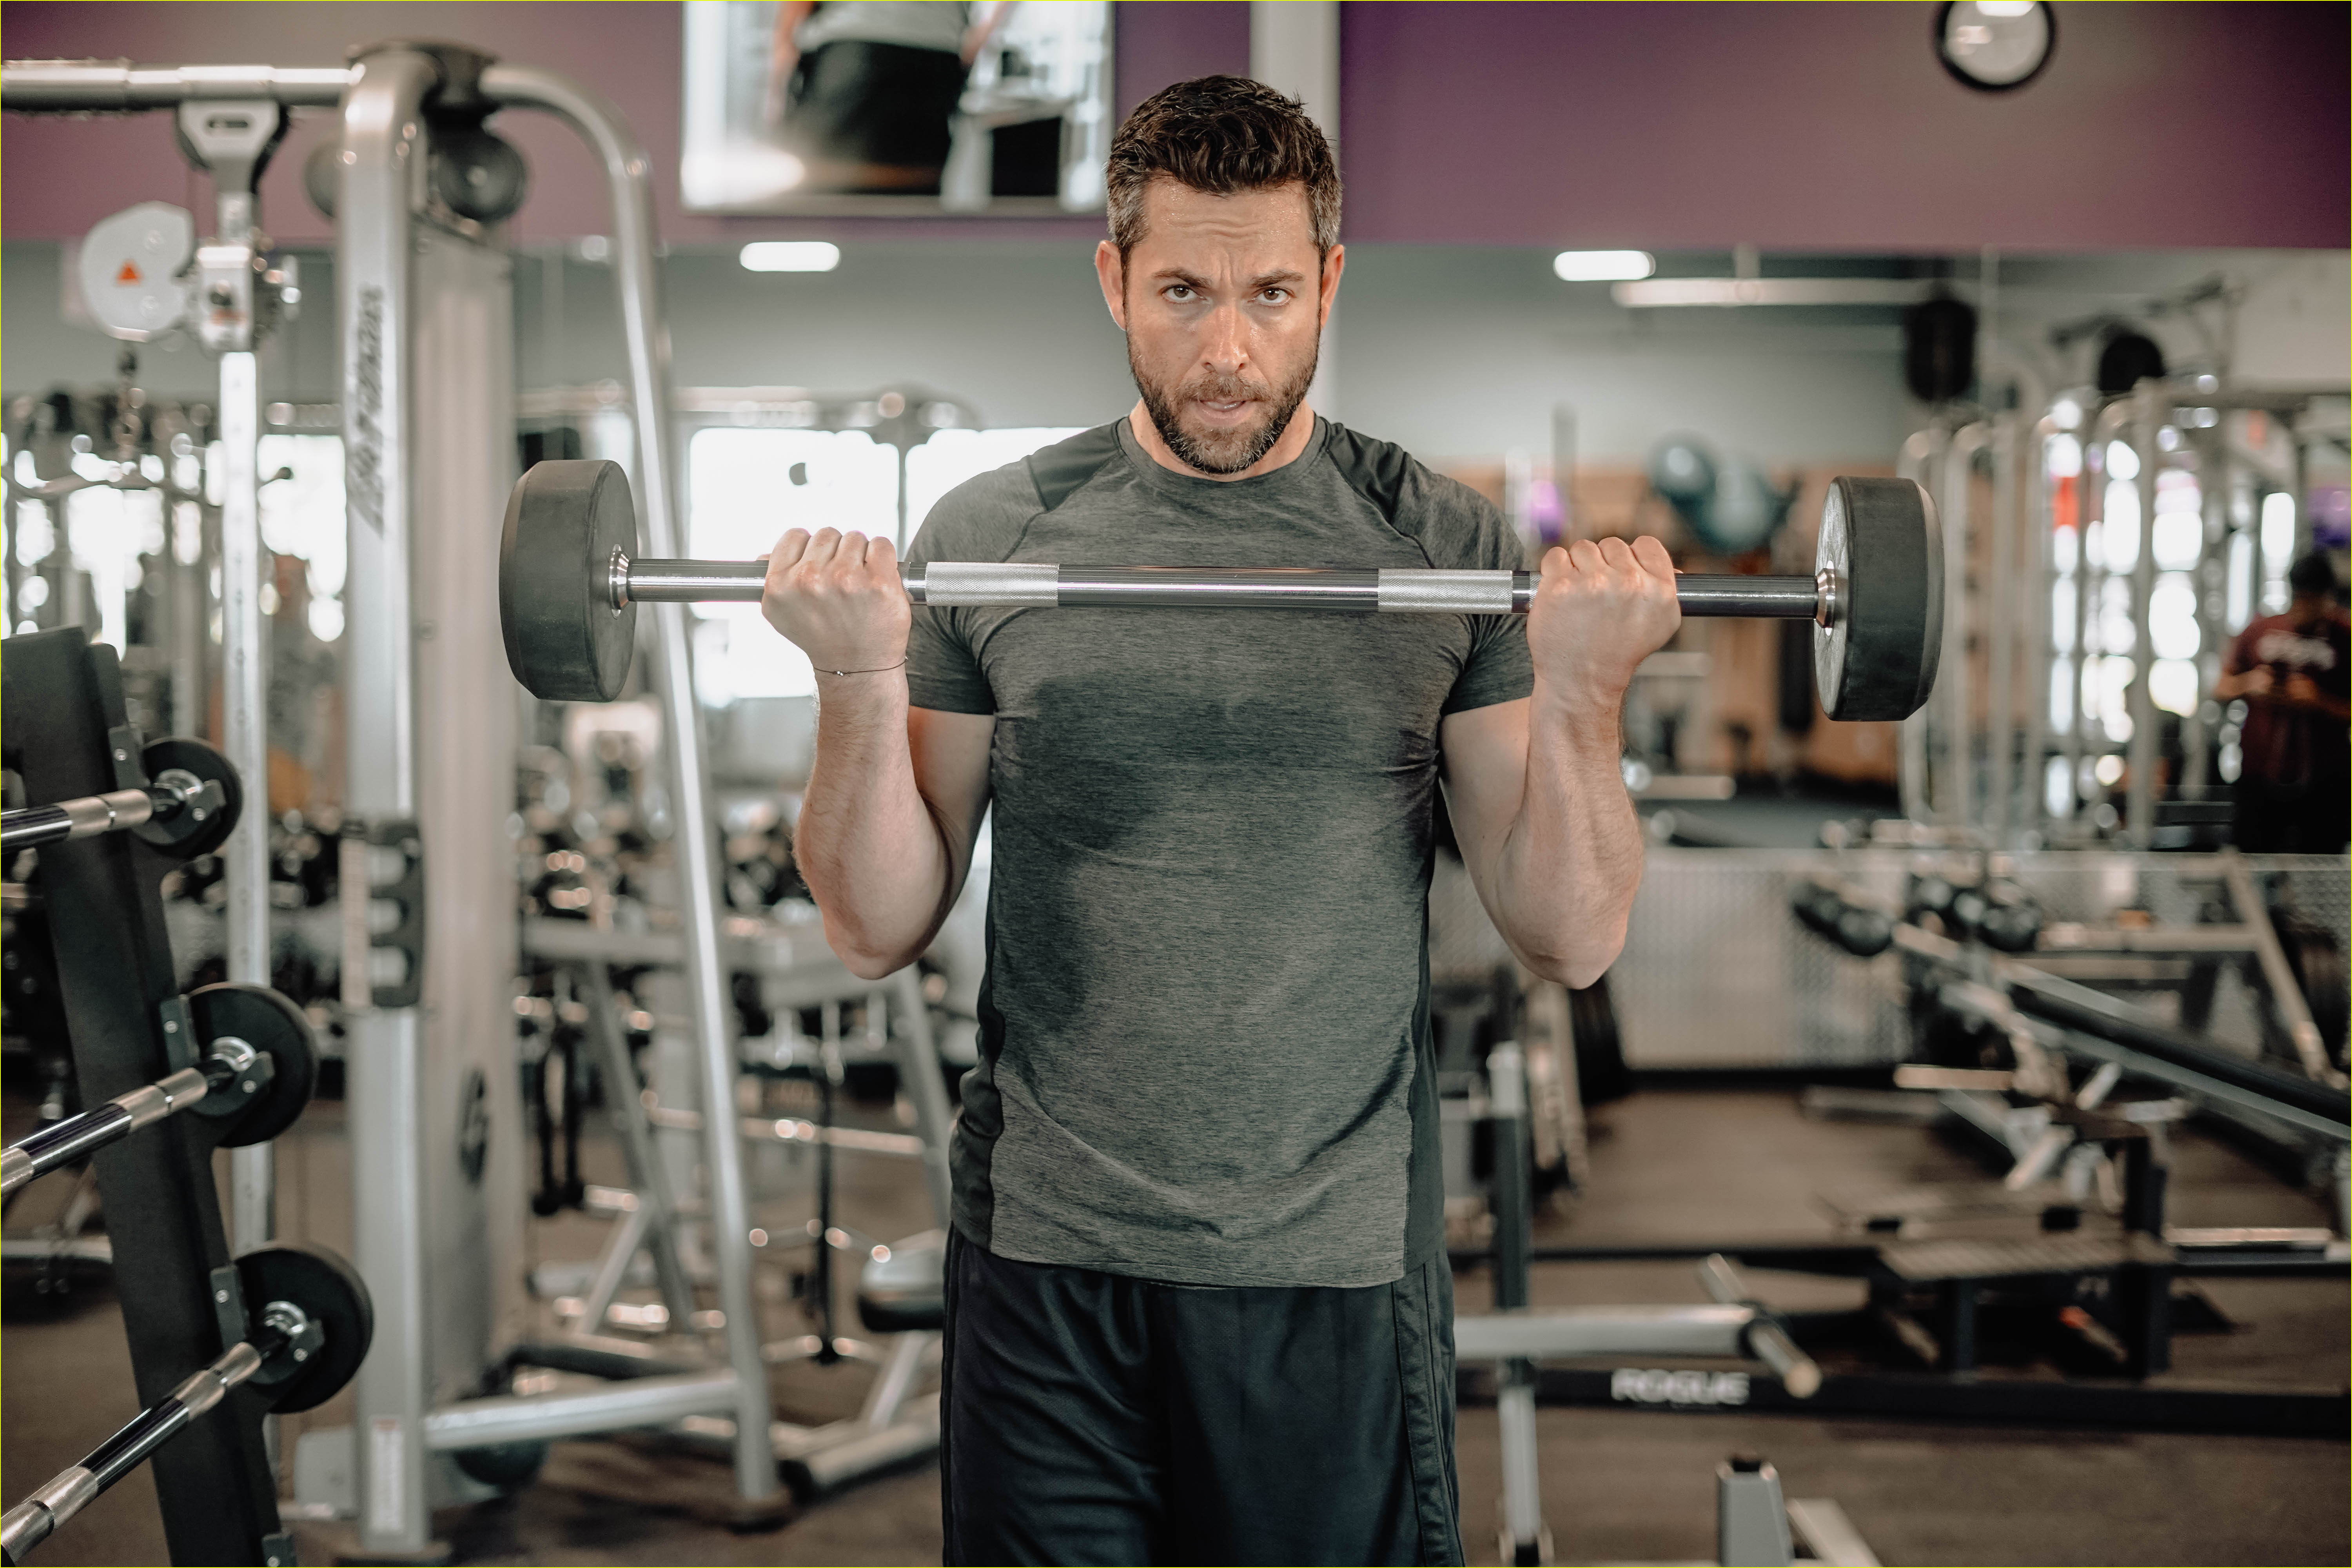 zachary levi bares massive biceps promoting flow supplements company 03